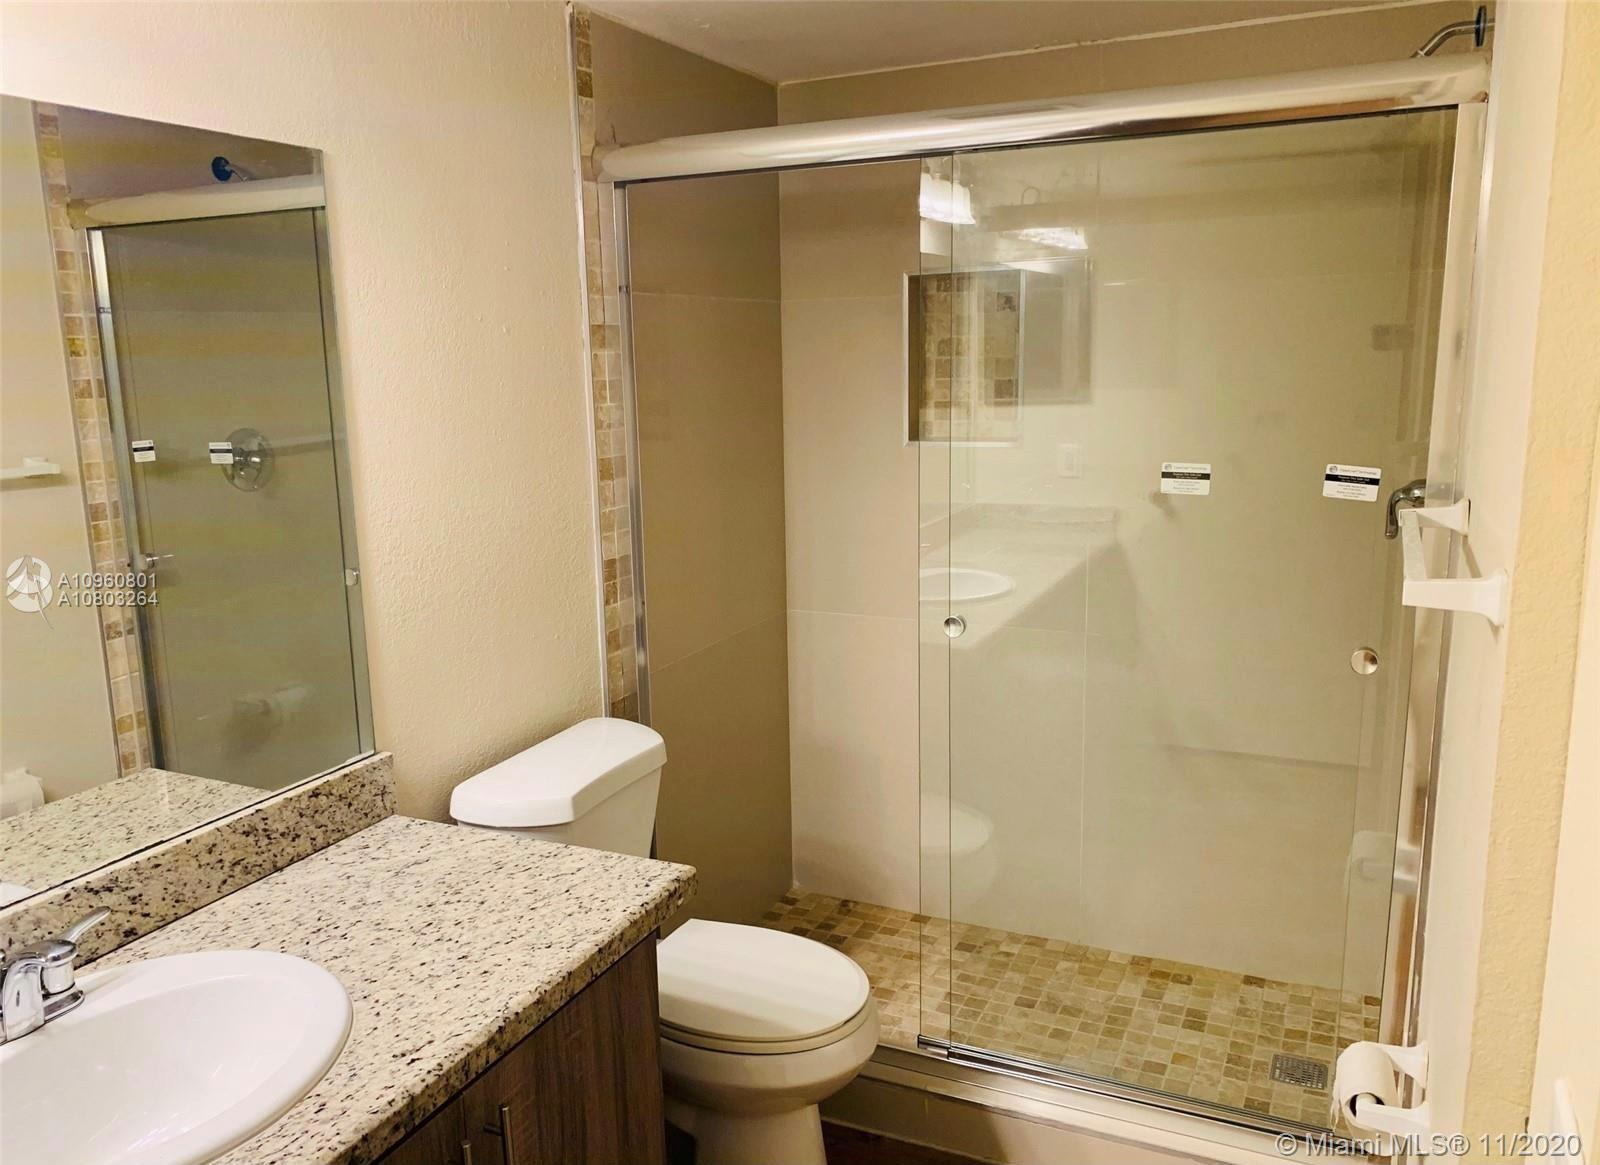 565 Vista Isles Dr # 2014, Sunrise, Florida 33325, 1 Bedroom Bedrooms, ,1 BathroomBathrooms,Residential,For Sale,565 Vista Isles Dr # 2014,A10960801